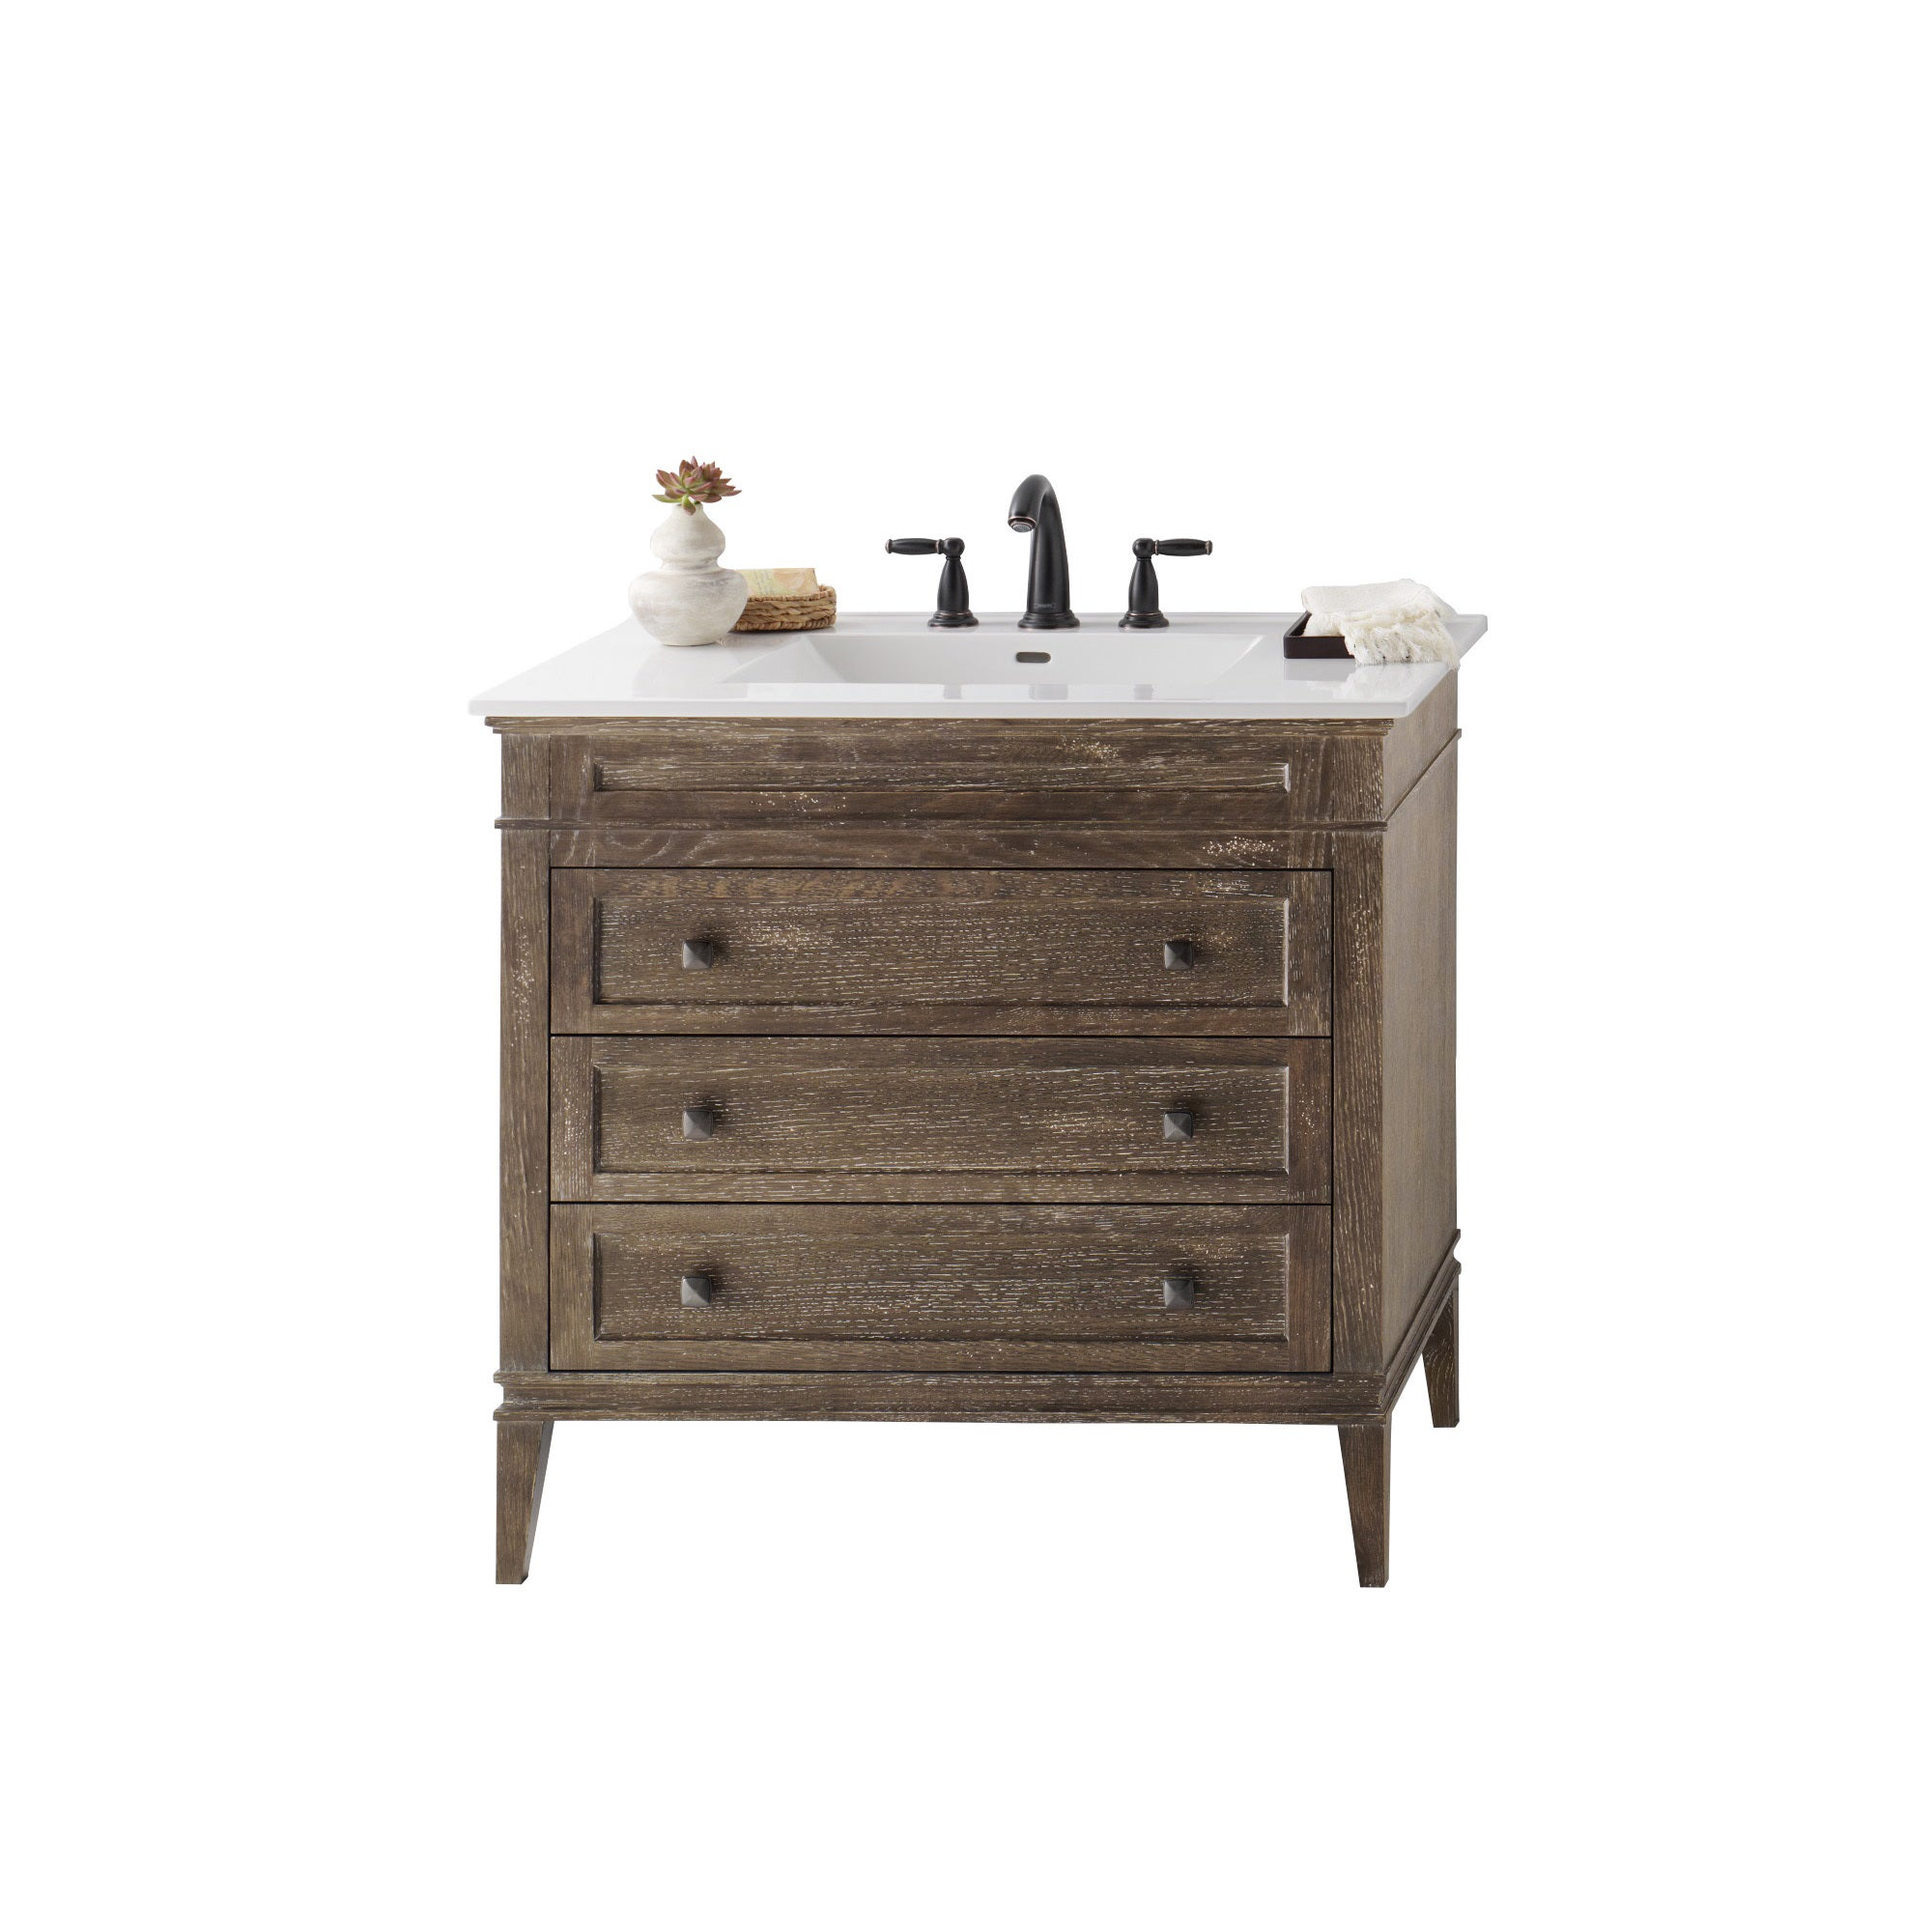 Ronbow Laurel 36 Inch Bathroom Vanity Set In Vintage Cafe With Ceramic Sink Top White Free Shipping Today 13983801